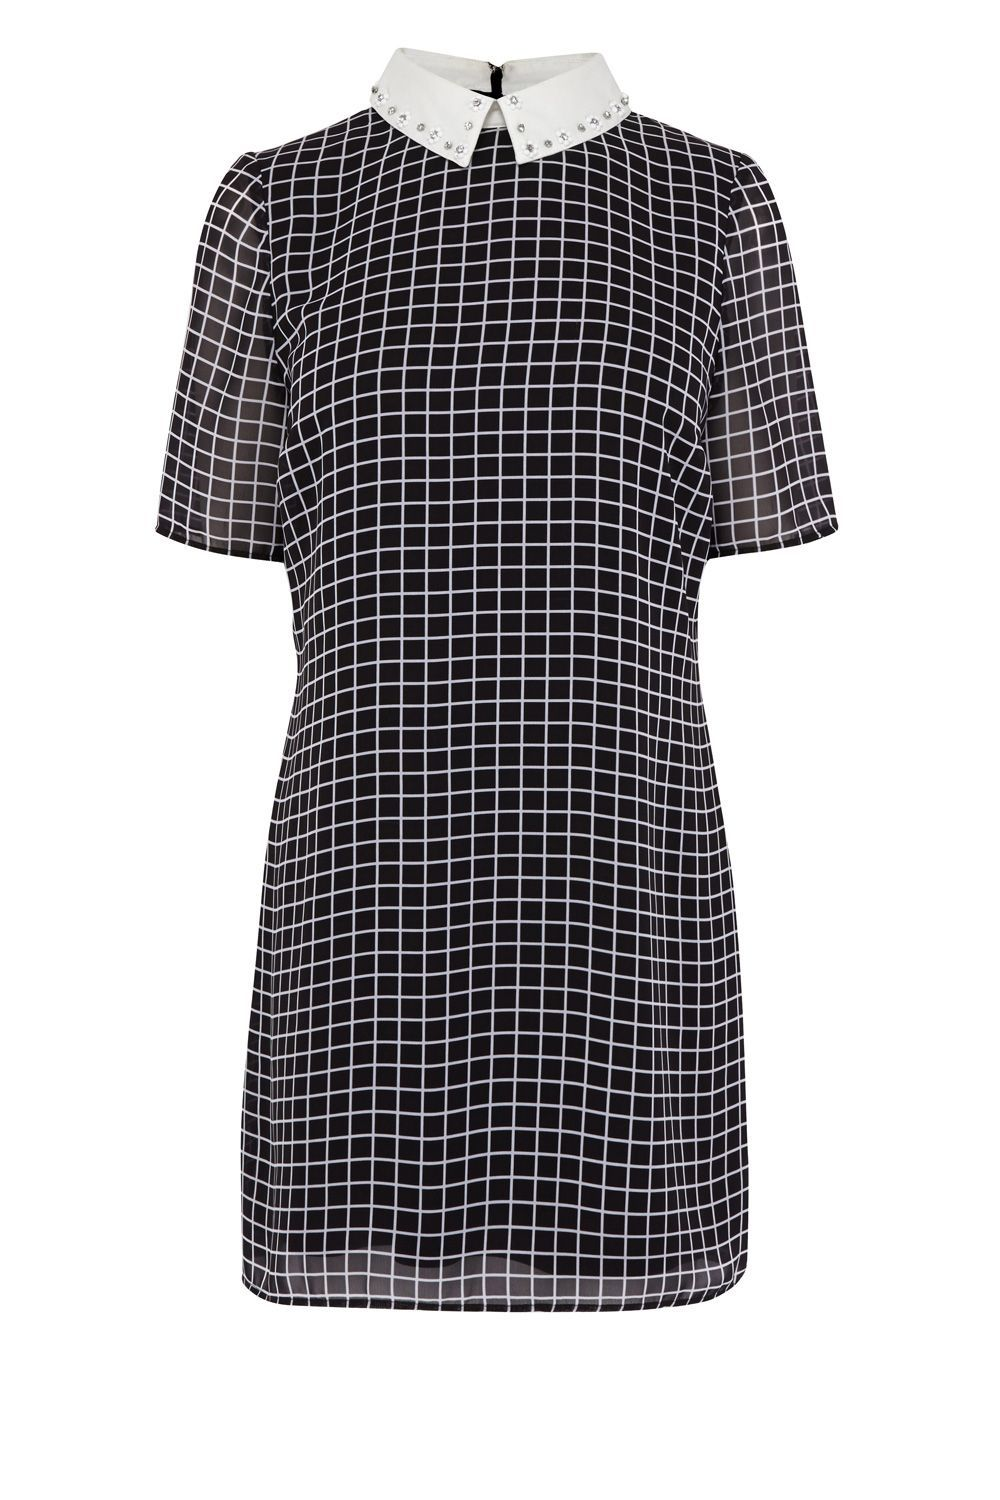 Jaxson Check Shirt Dress, Natural - style: shift; length: mid thigh; pattern: checked/gingham; secondary colour: white; predominant colour: navy; occasions: casual; fit: body skimming; fibres: polyester/polyamide - 100%; neckline: no opening/shirt collar/peter pan; sleeve length: short sleeve; sleeve style: standard; pattern type: fabric; texture group: other - light to midweight; multicoloured: multicoloured; season: s/s 2016; wardrobe: highlight